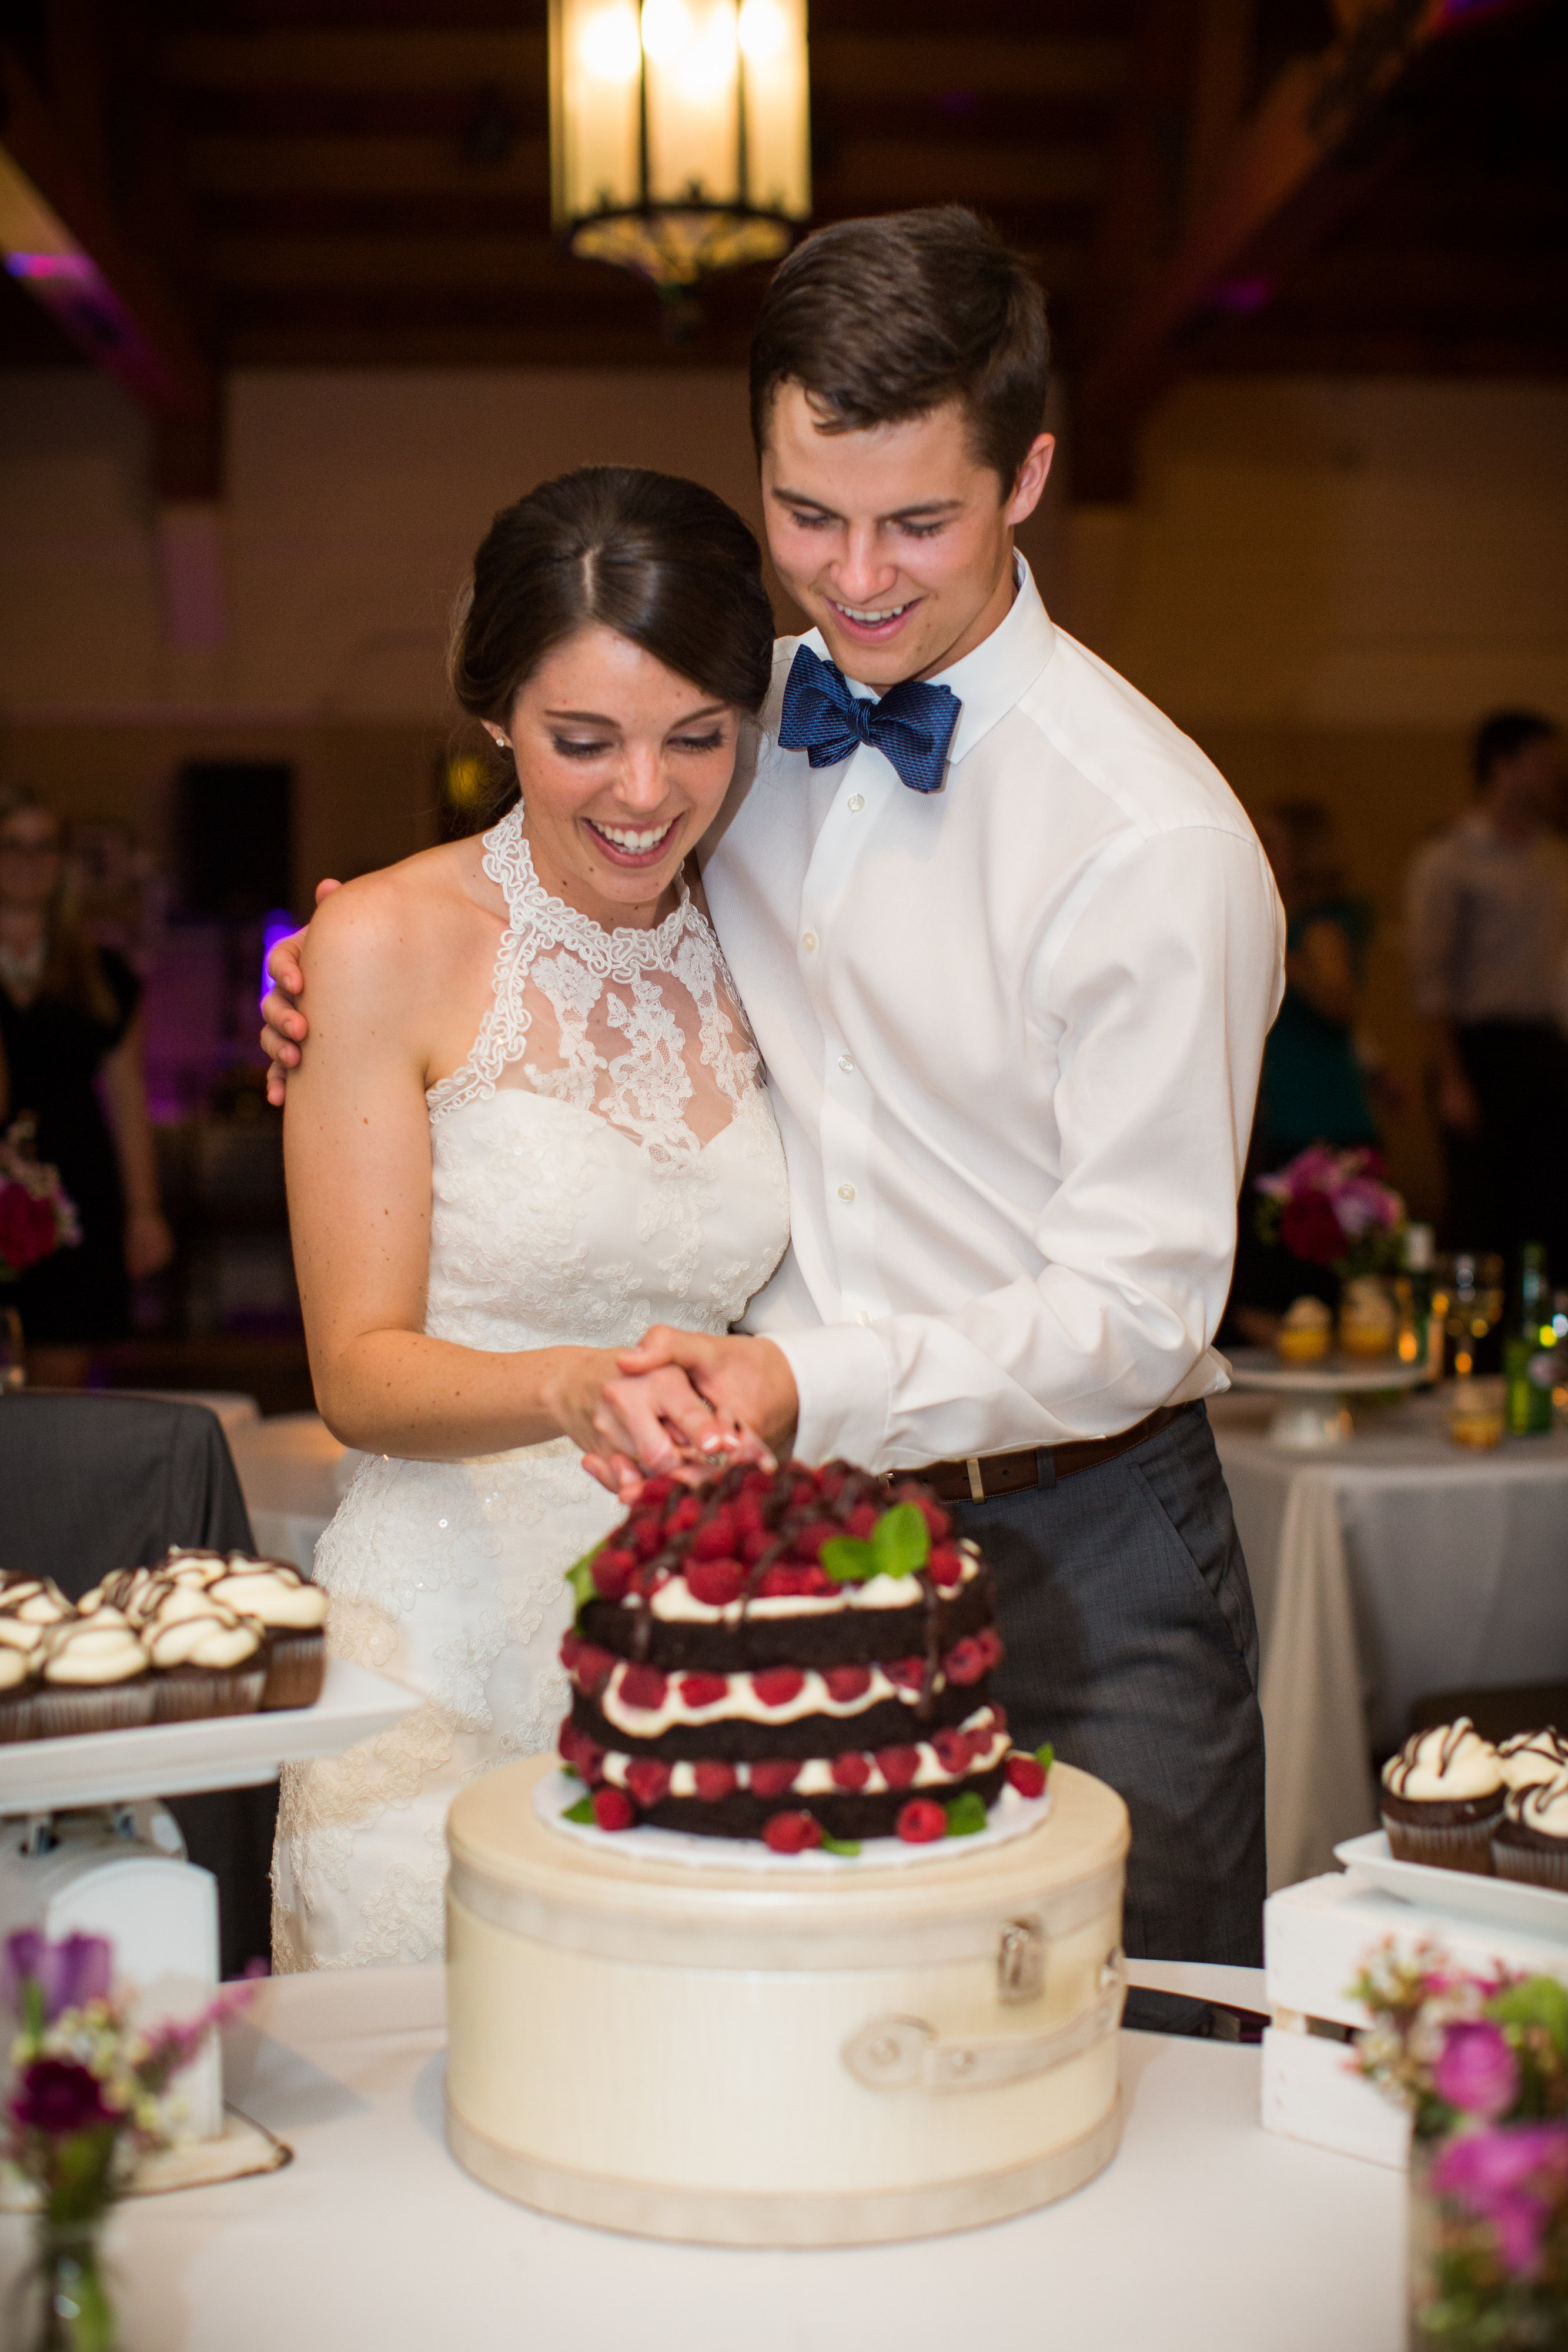 View More: http://charbeck.pass.us/01-17-15-nick-shelby